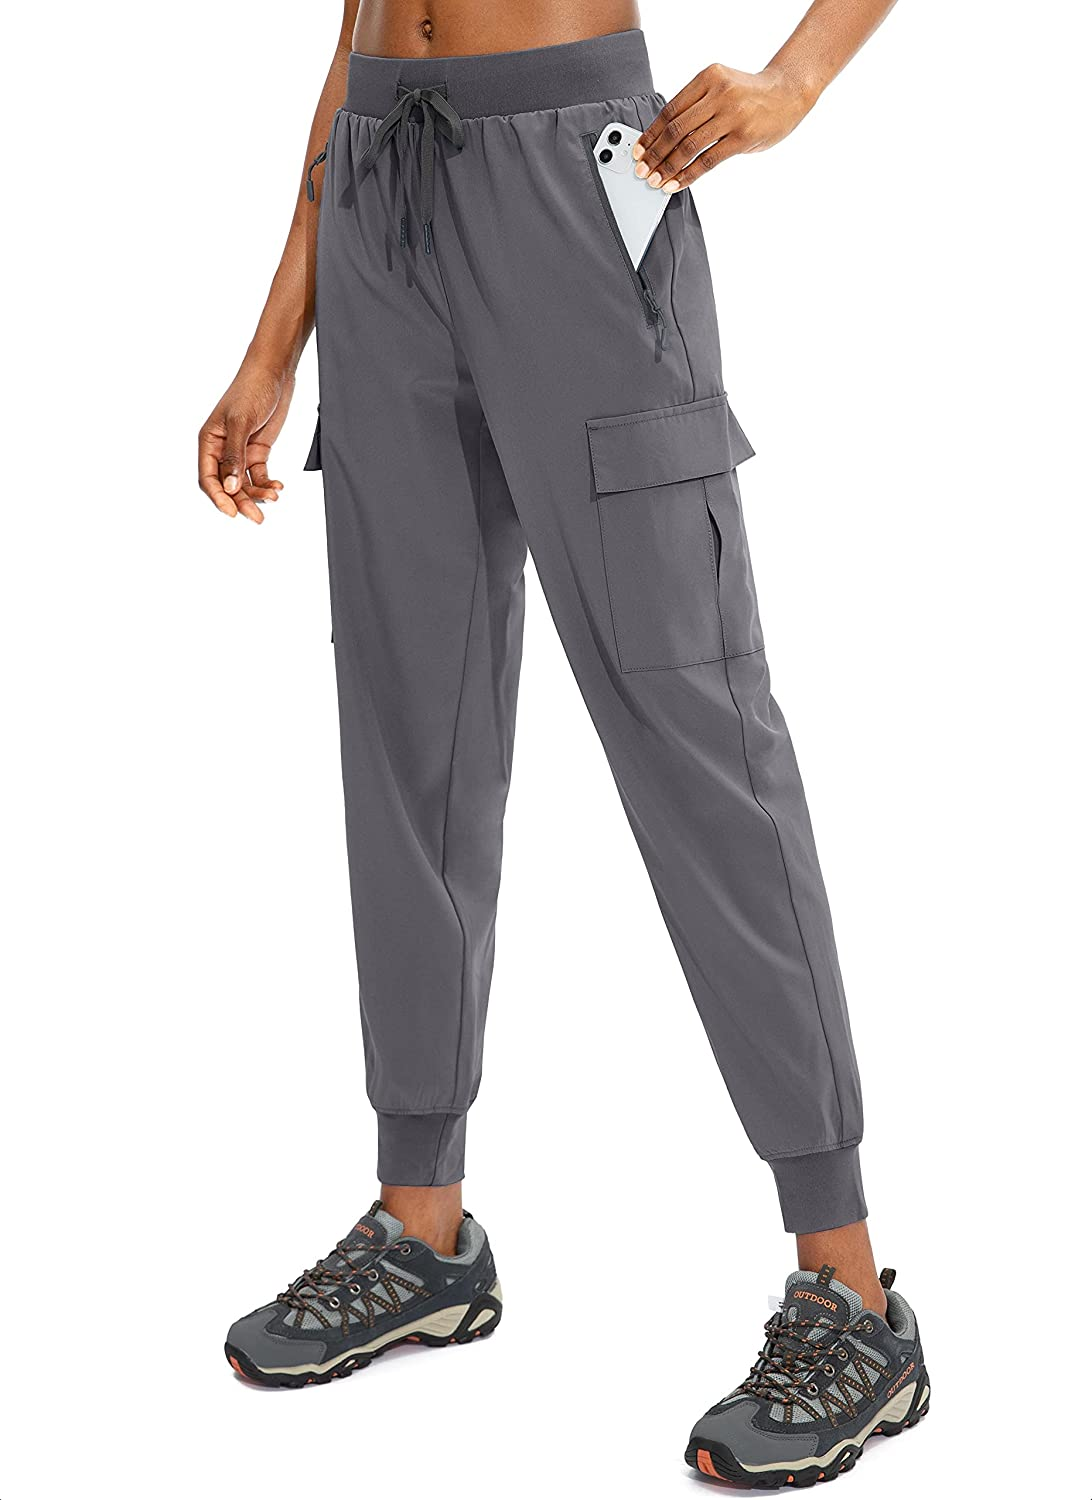 Soothfeel Mesa Mall Women's Cargo Hiking Pants Qu Pockets with Max 82% OFF Lightweight